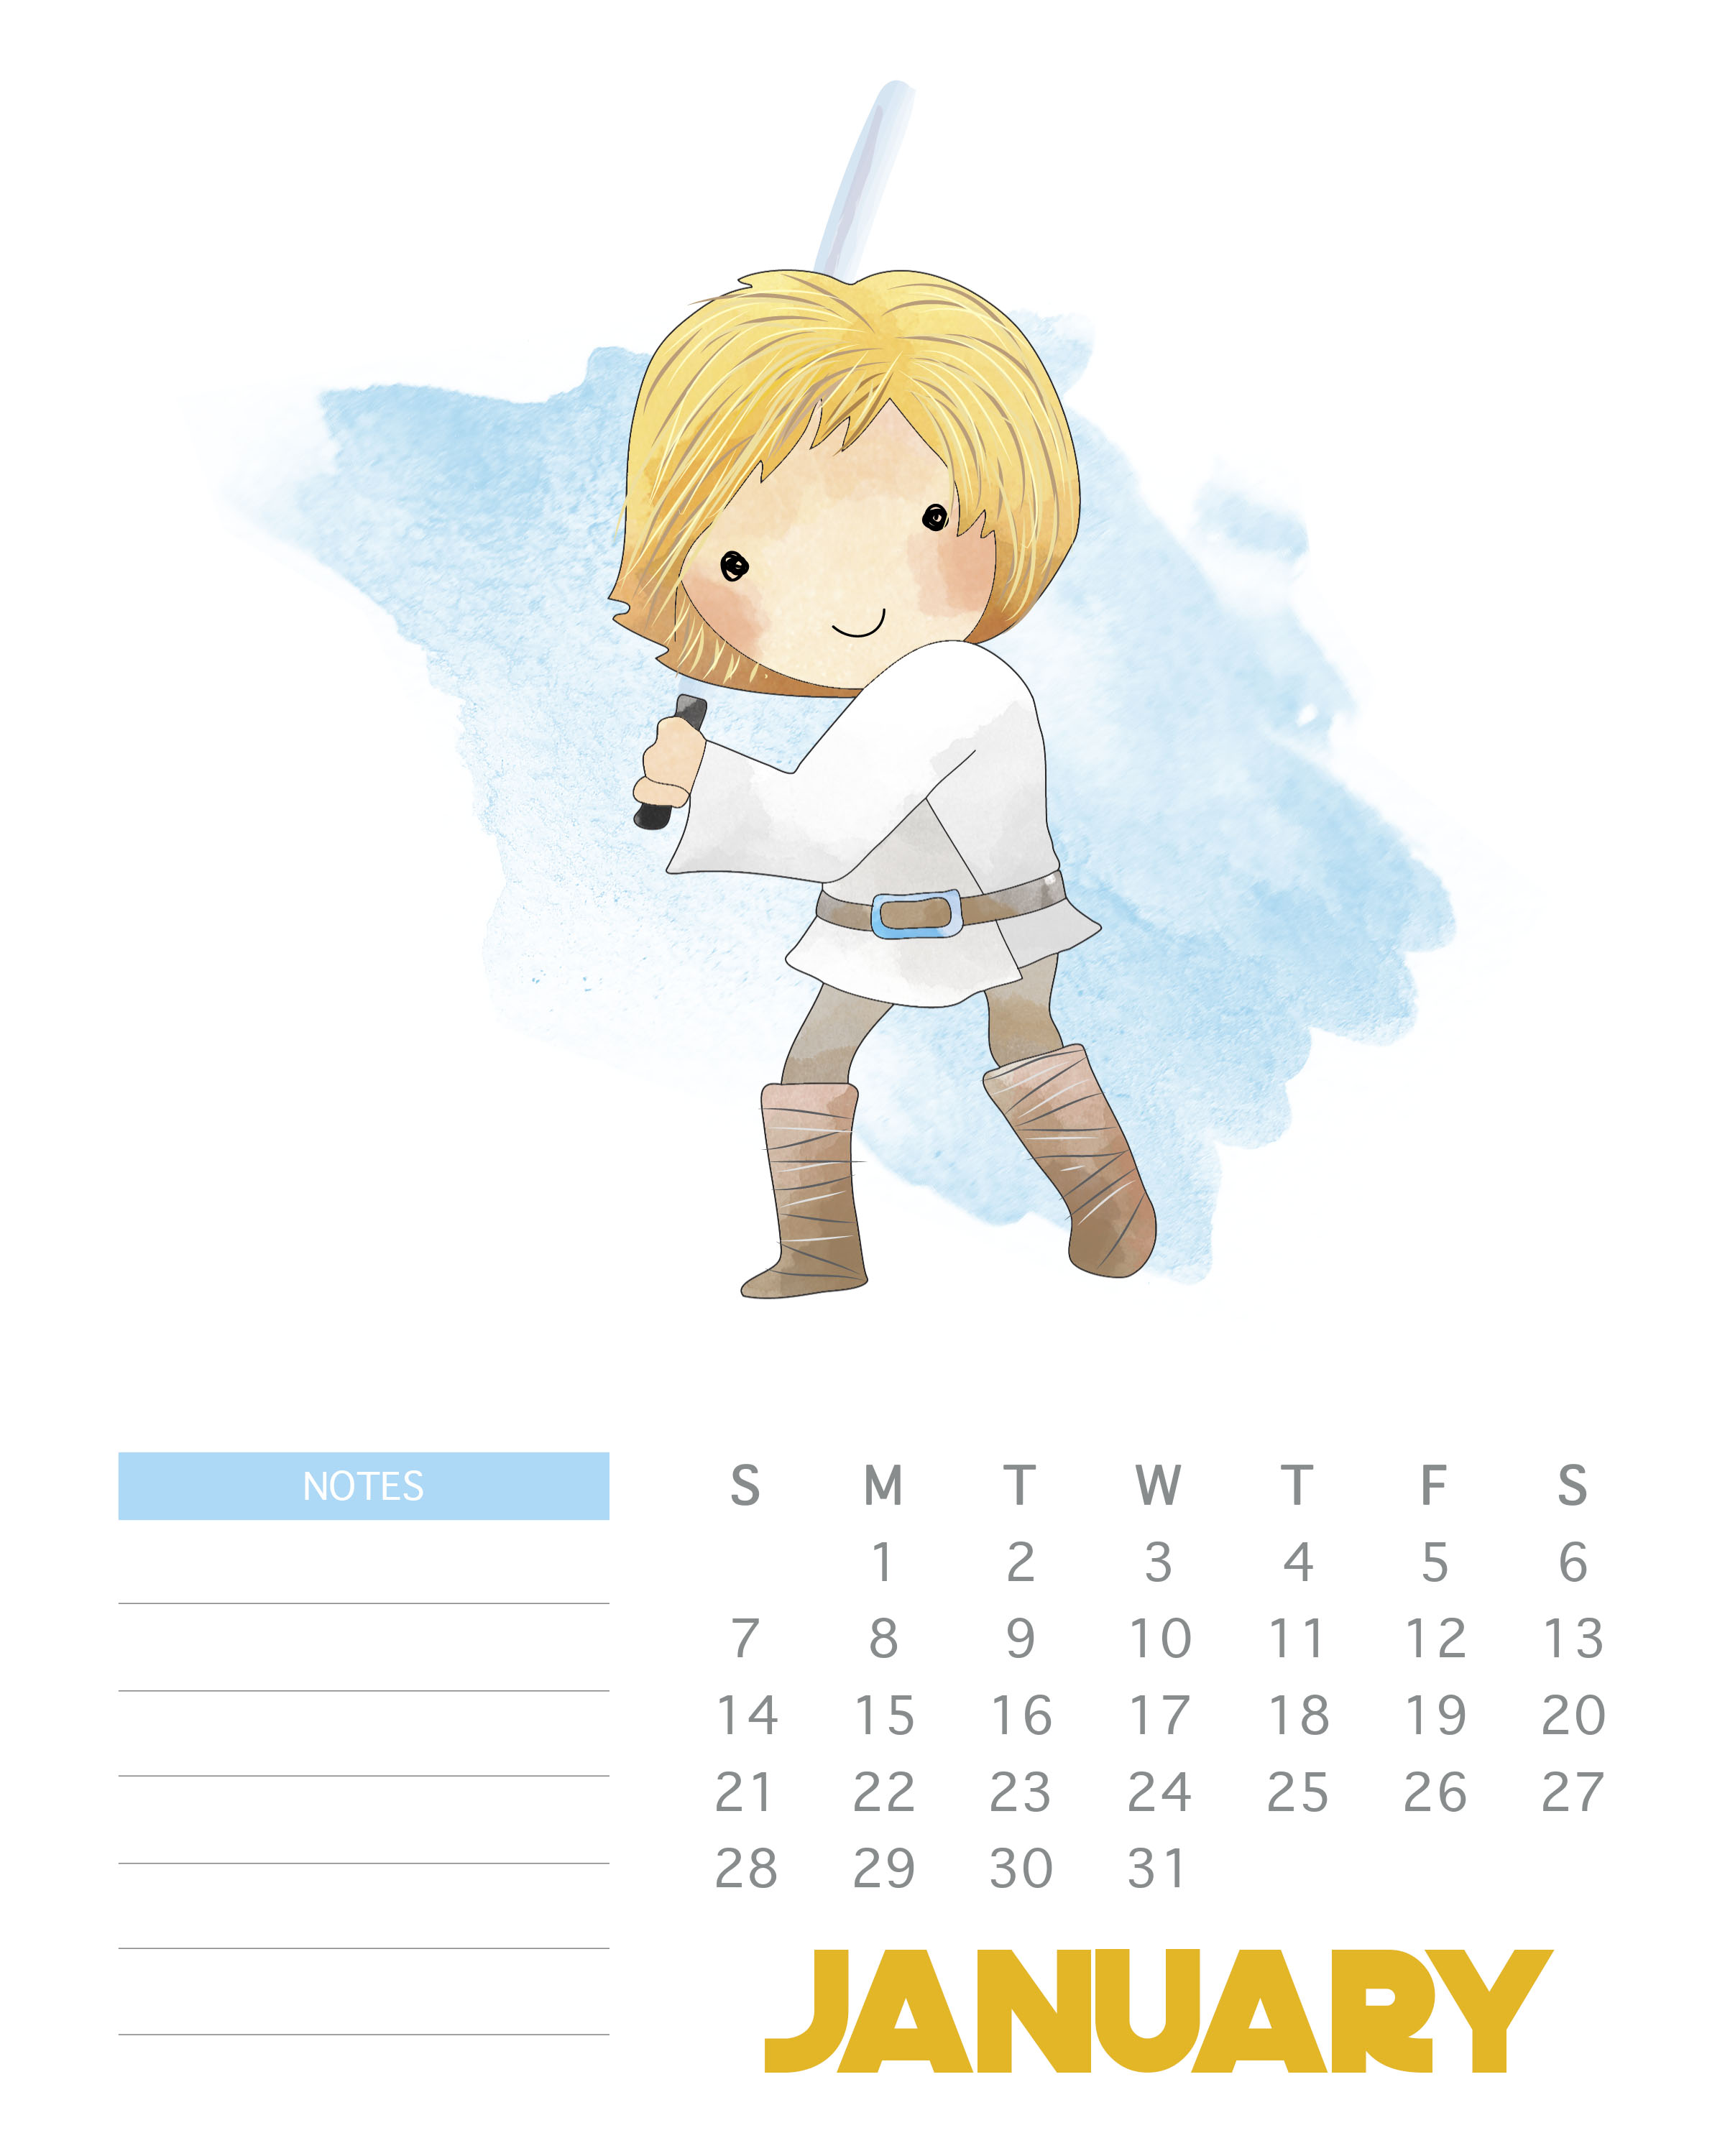 January 2018 Star Wars Calendar Template